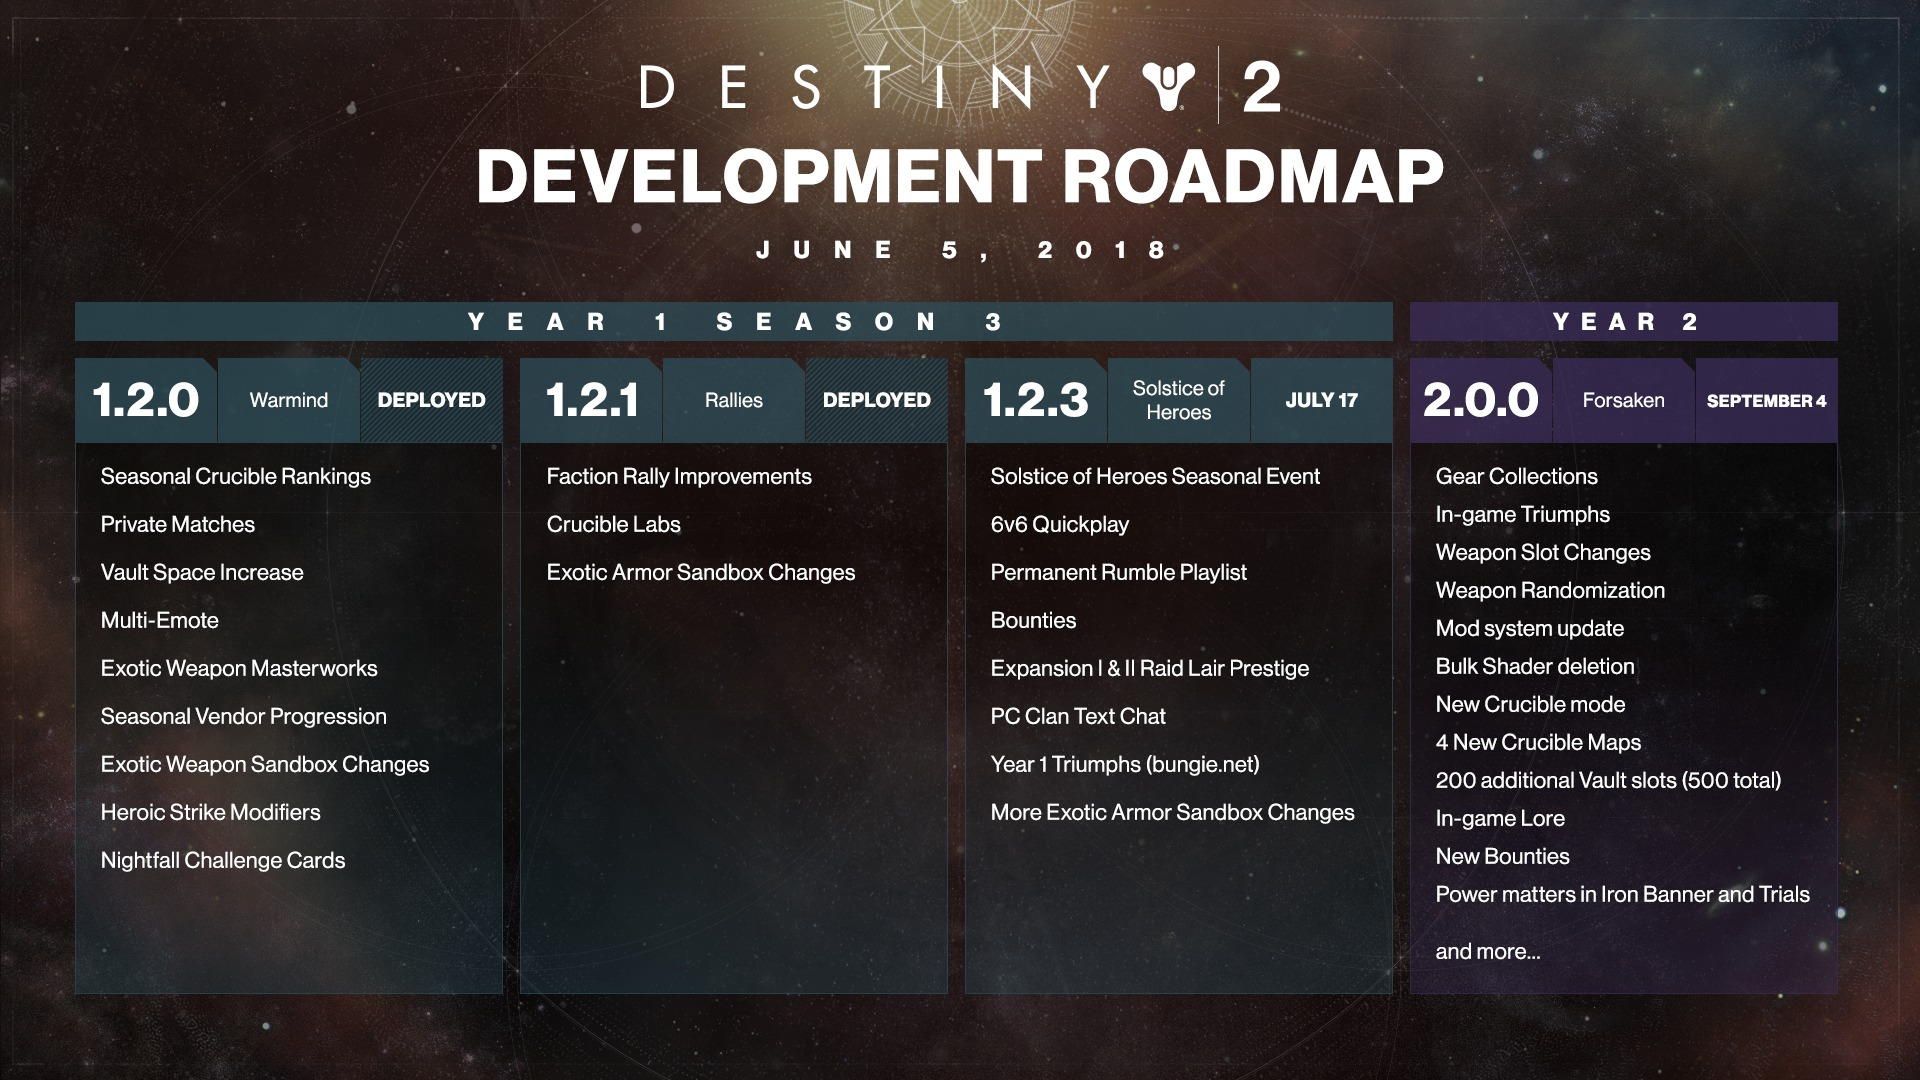 Density 2 season 8: details unveiled by Bungie